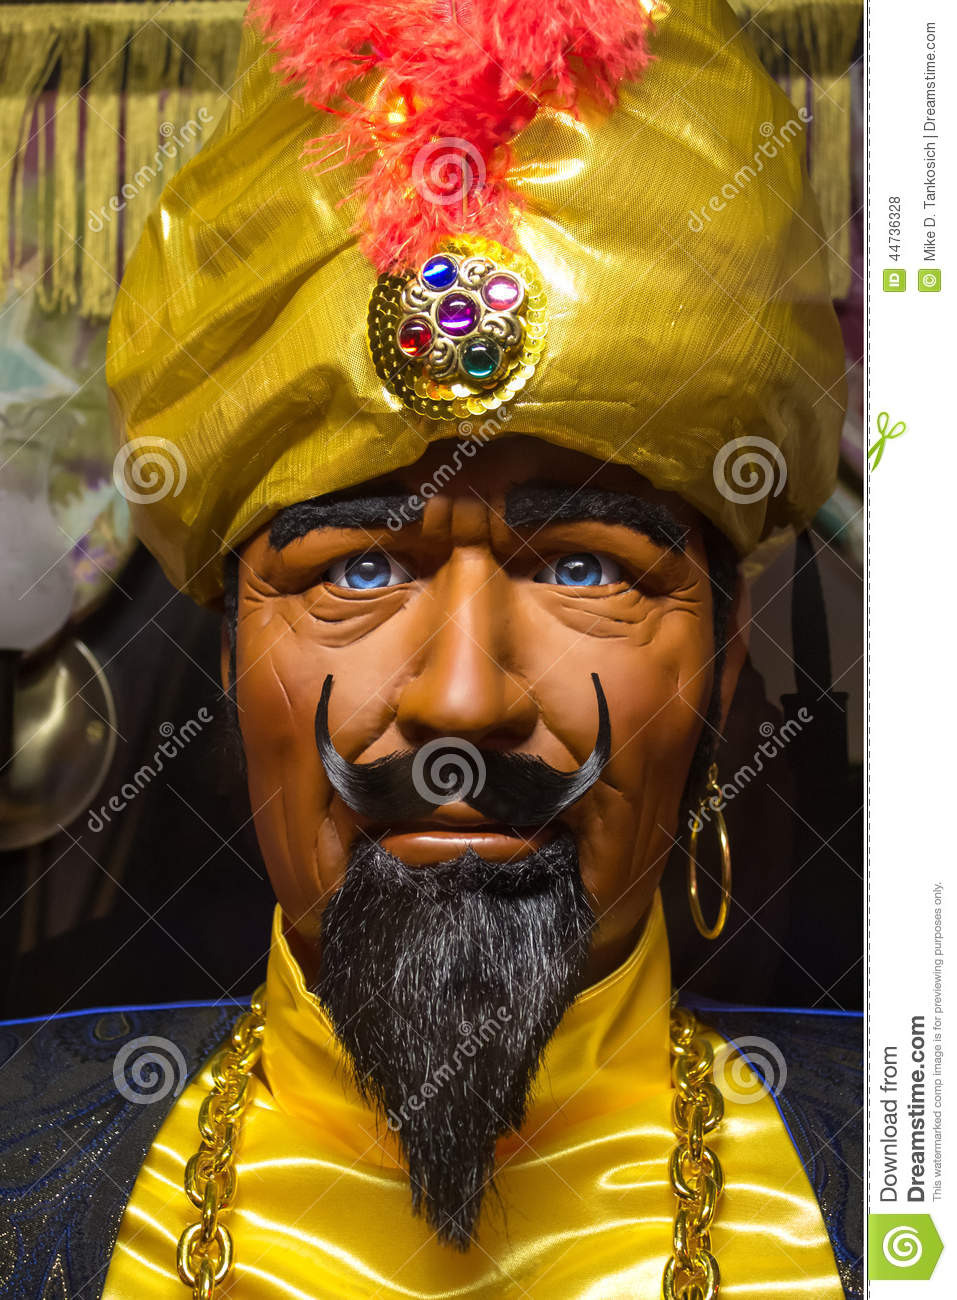 Fortune Teller Booth Halloween Craft: Zoltar The Fortune Teller Editorial Stock Photo. Image Of